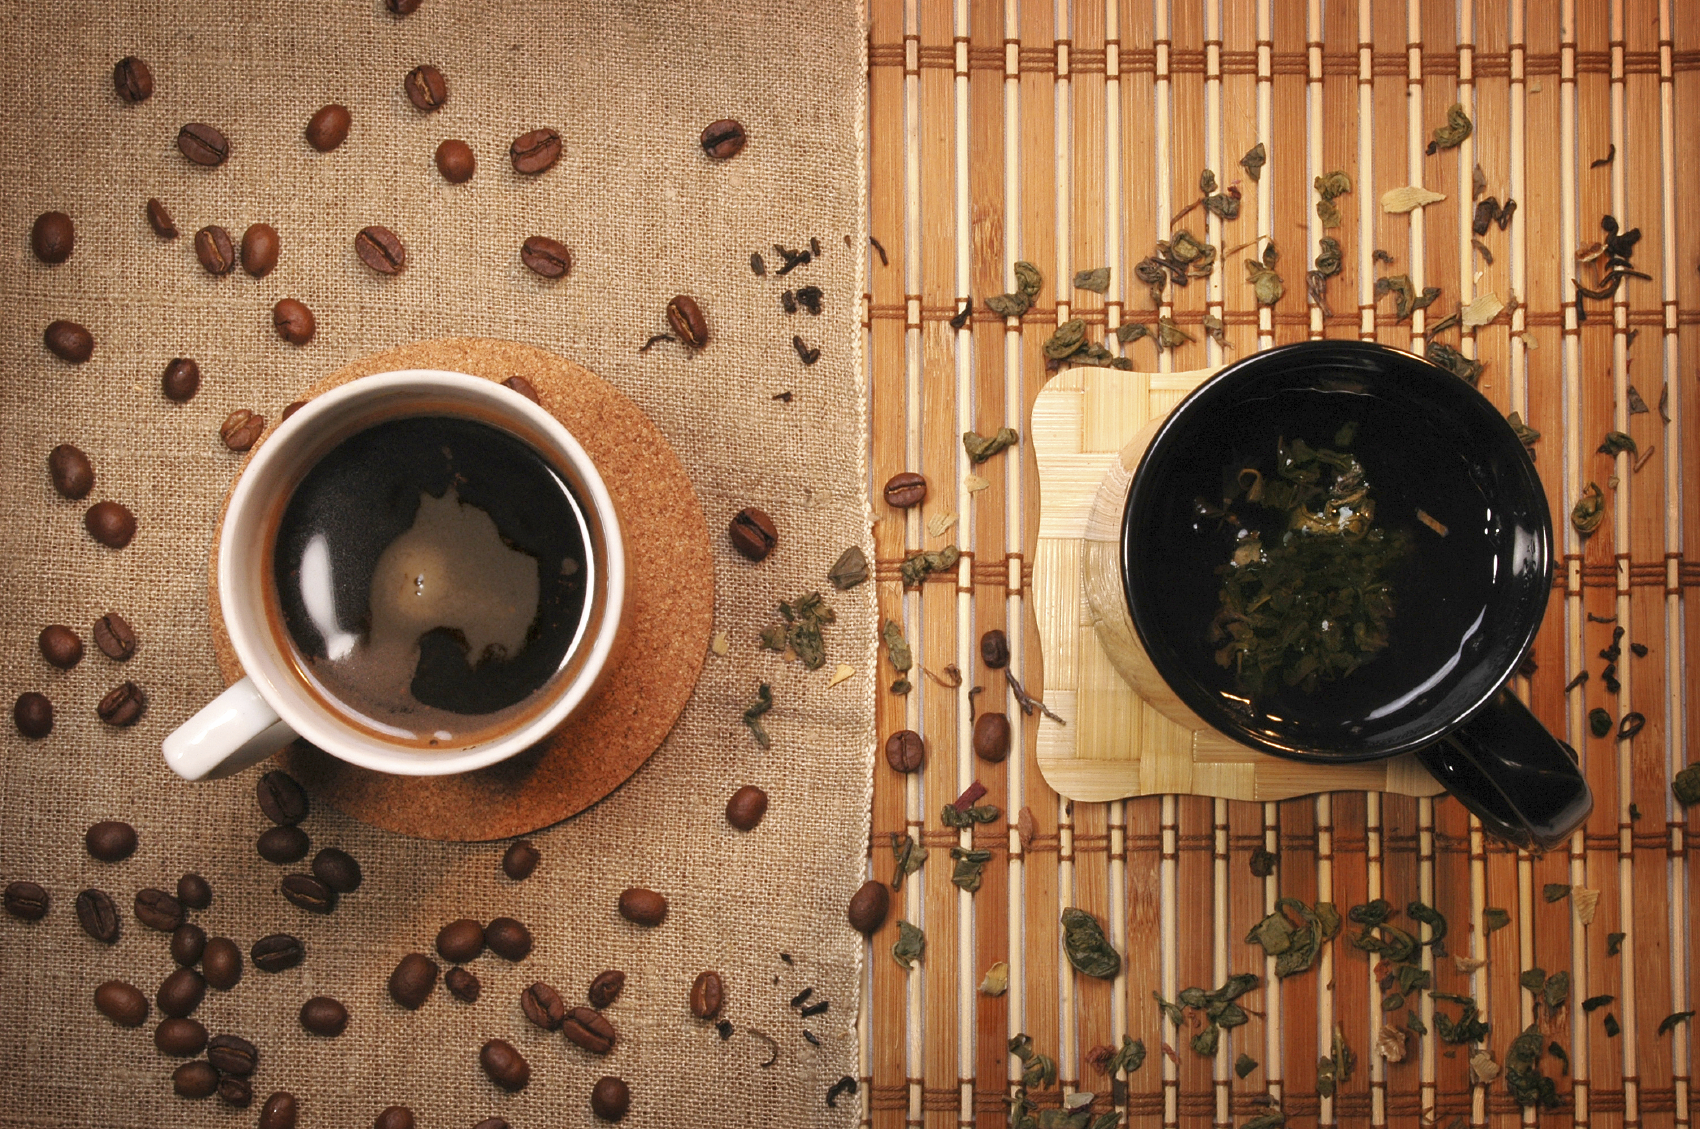 Which is healthier: coffee or tea?